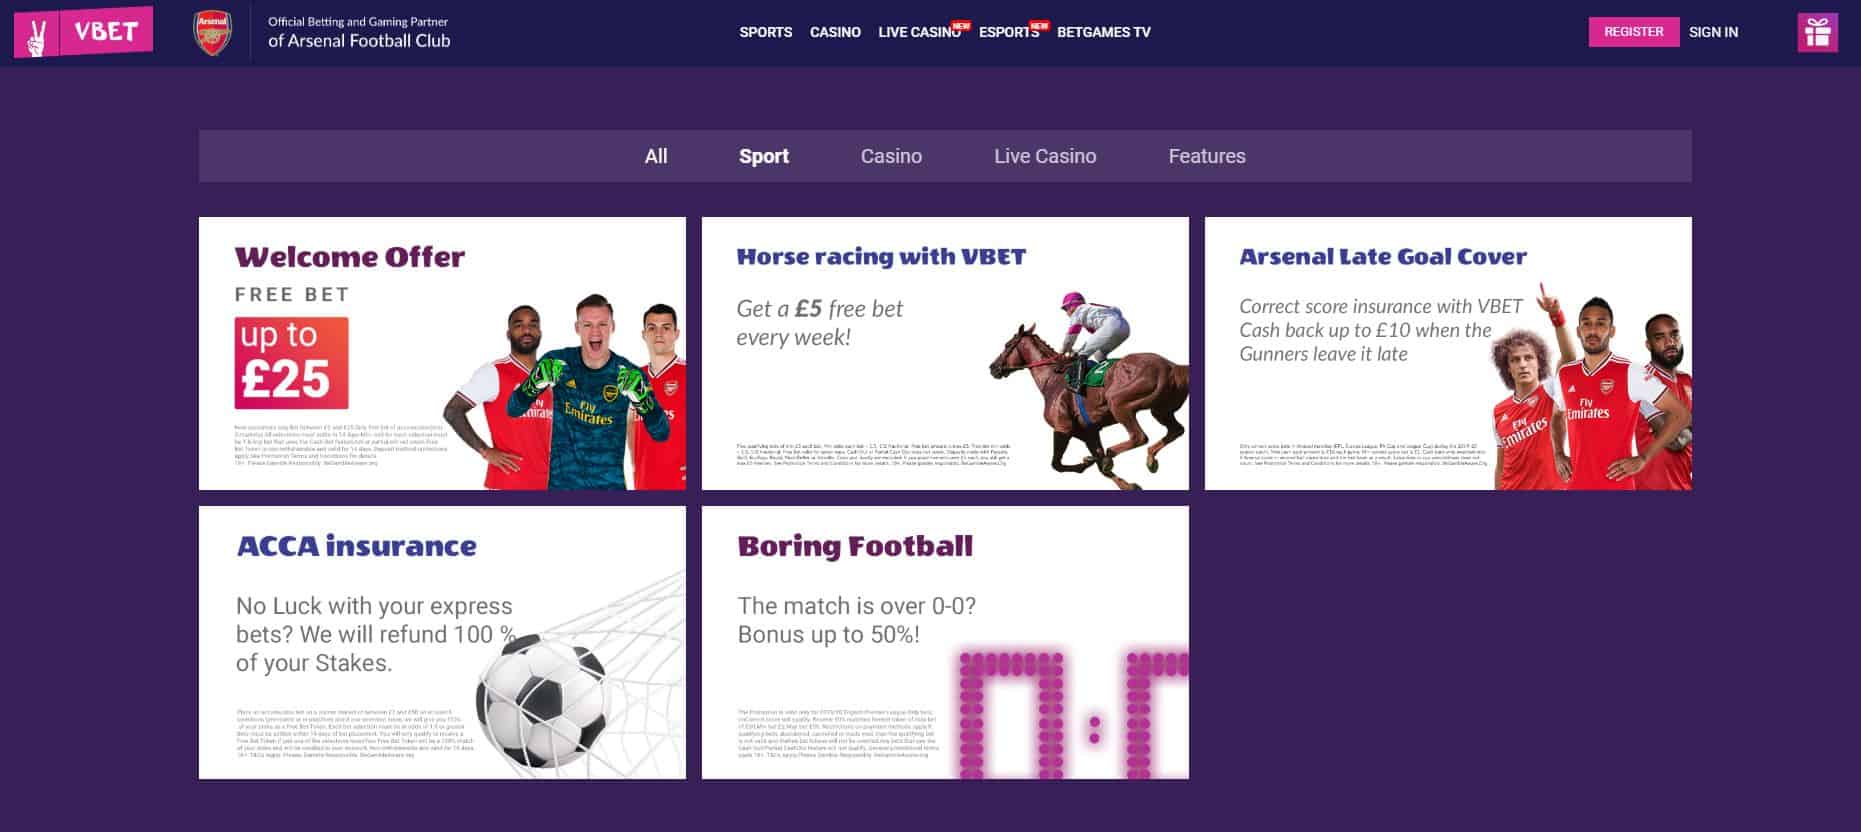 VBET Promotions Section